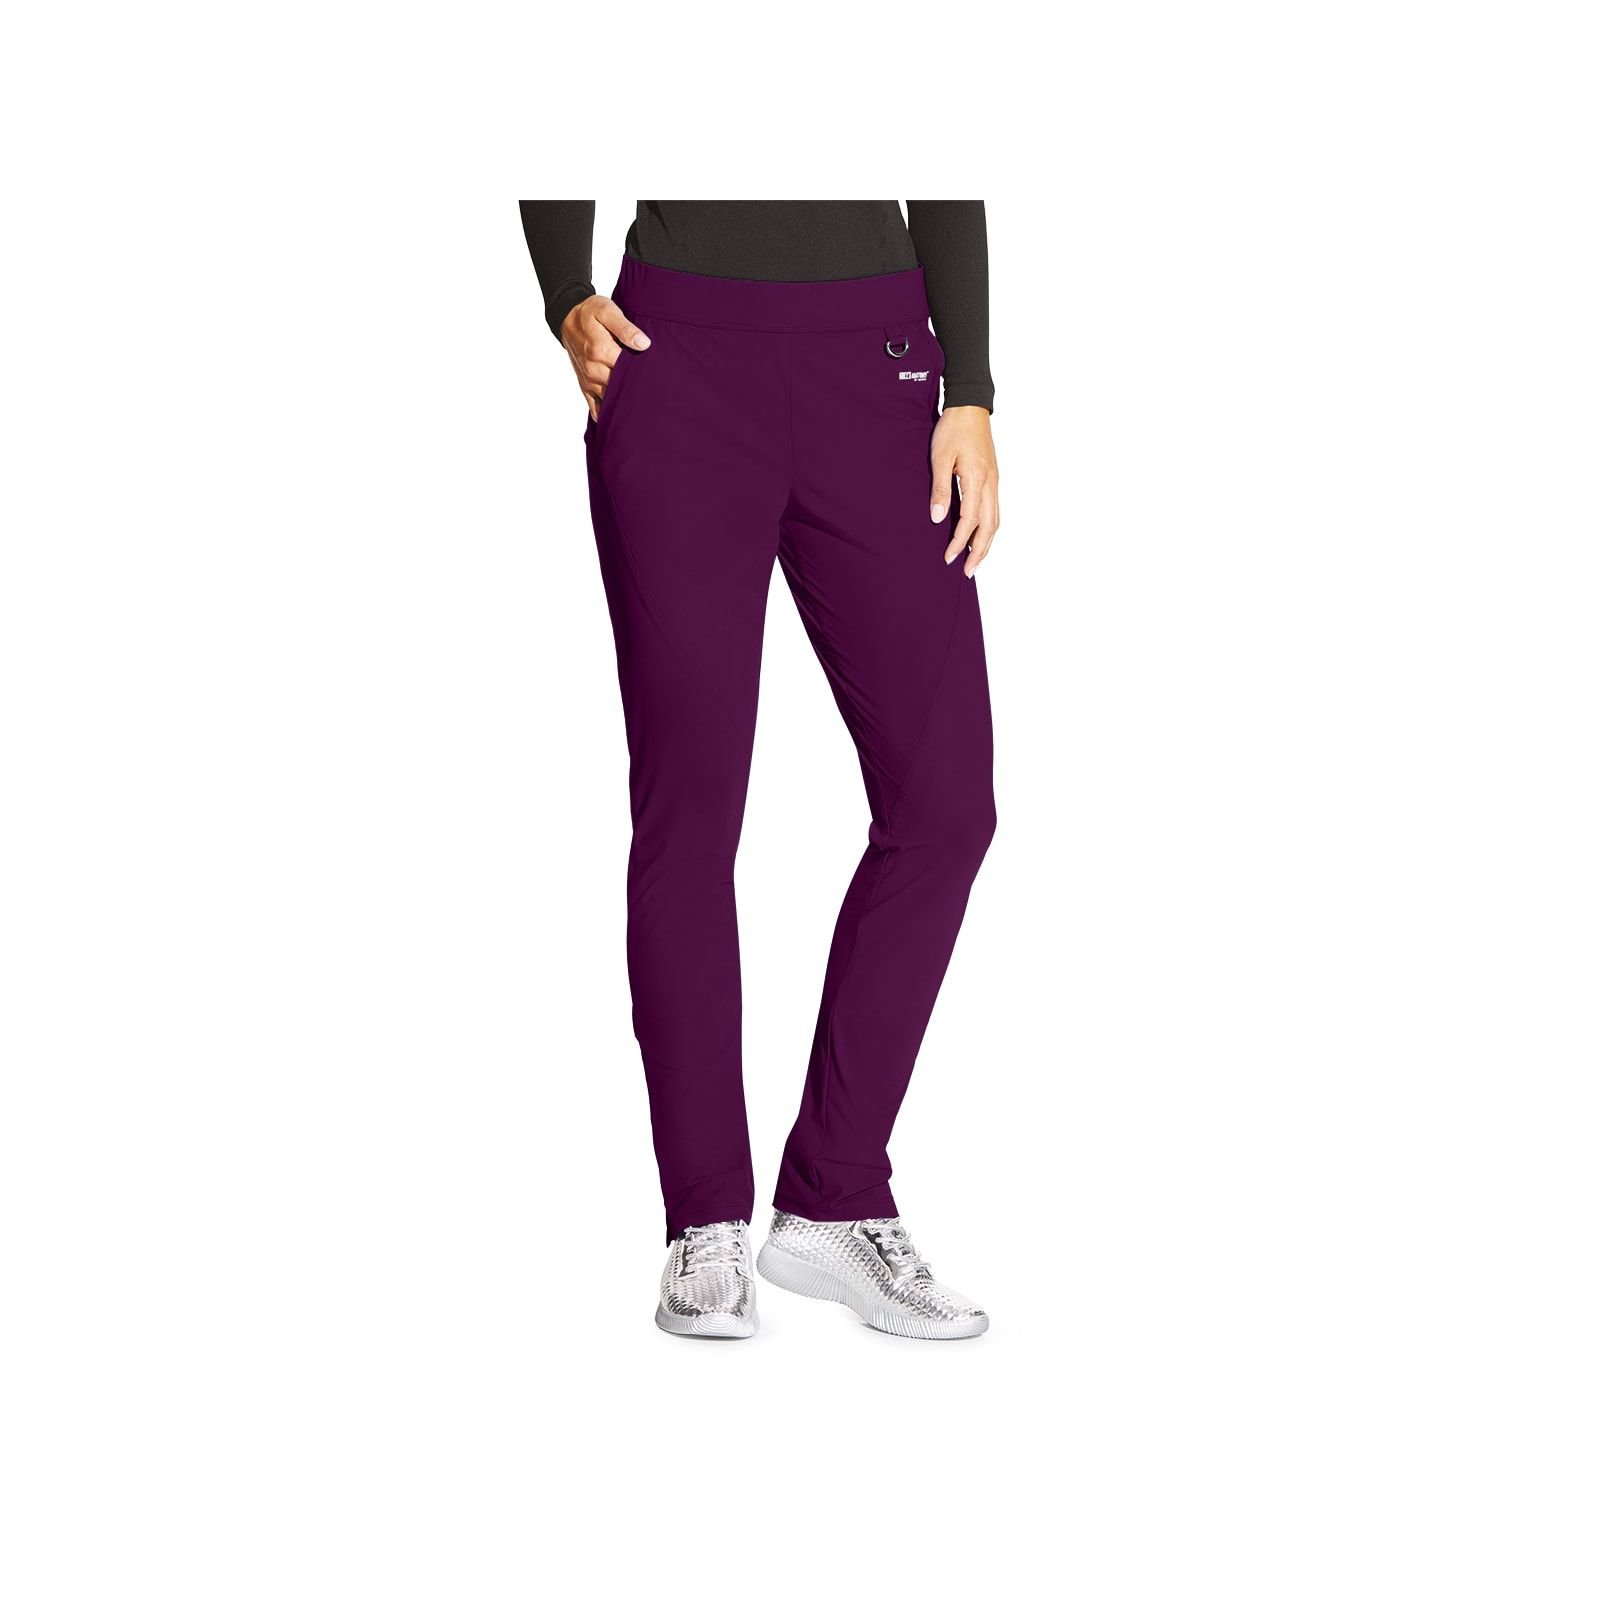 "Pantalon médical femme, couleur bordeaux vue de face, collection ""Grey's Anatomy Edge"" (GEP005-)"